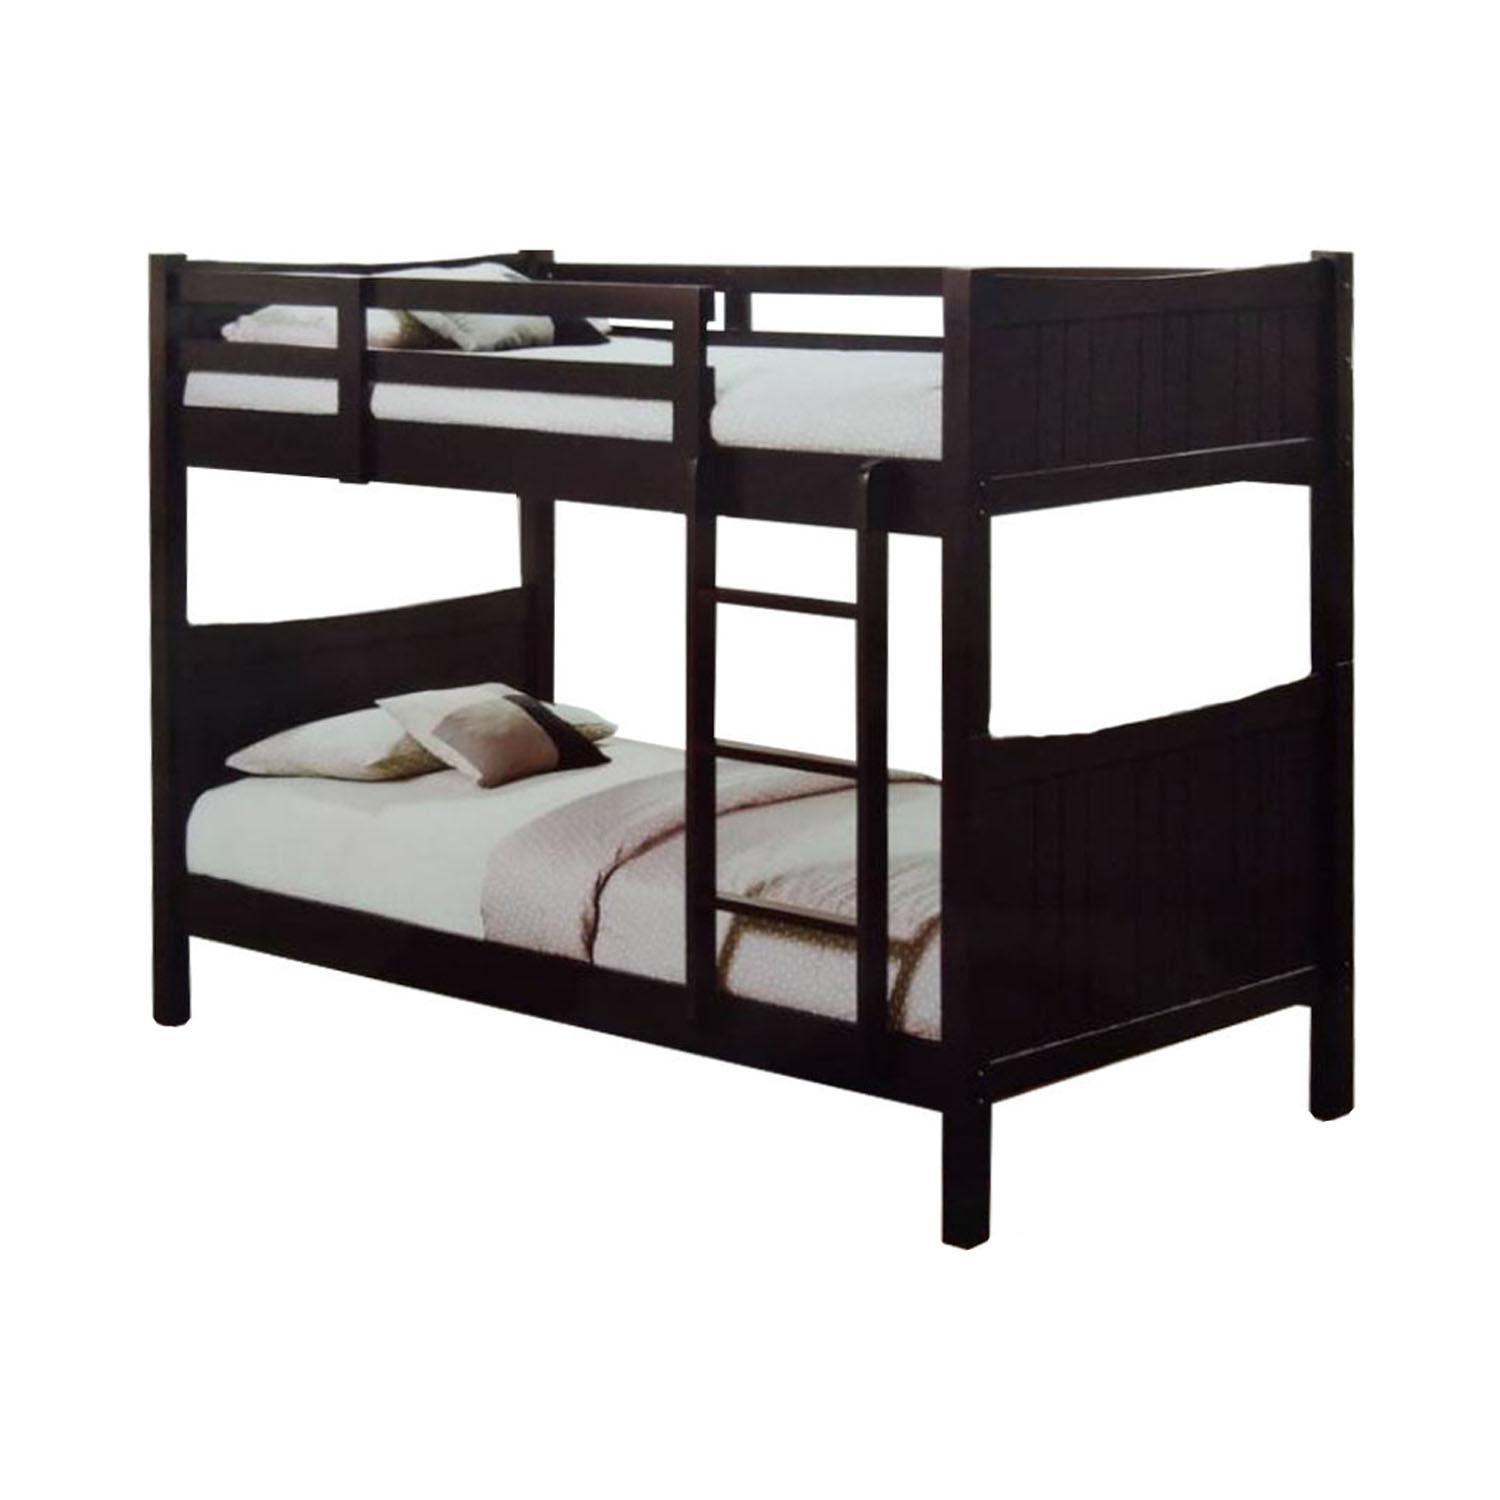 LIVING MALL_Royce Double Deck Bed_FREE DELIVERY